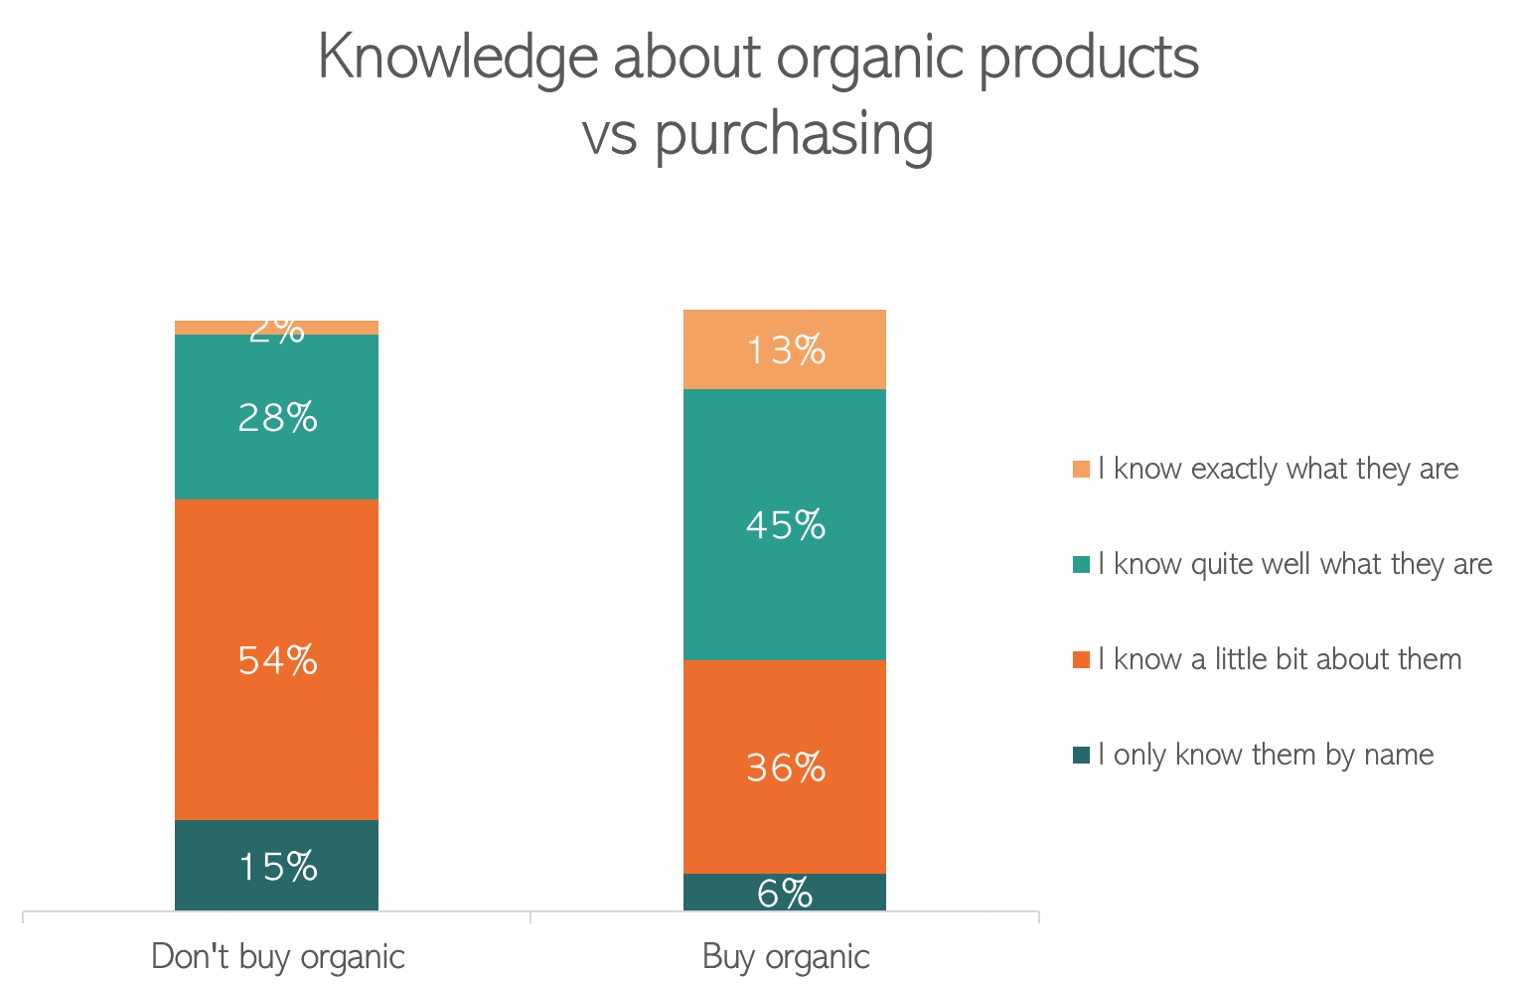 Knowledge about organic products vs purchasing